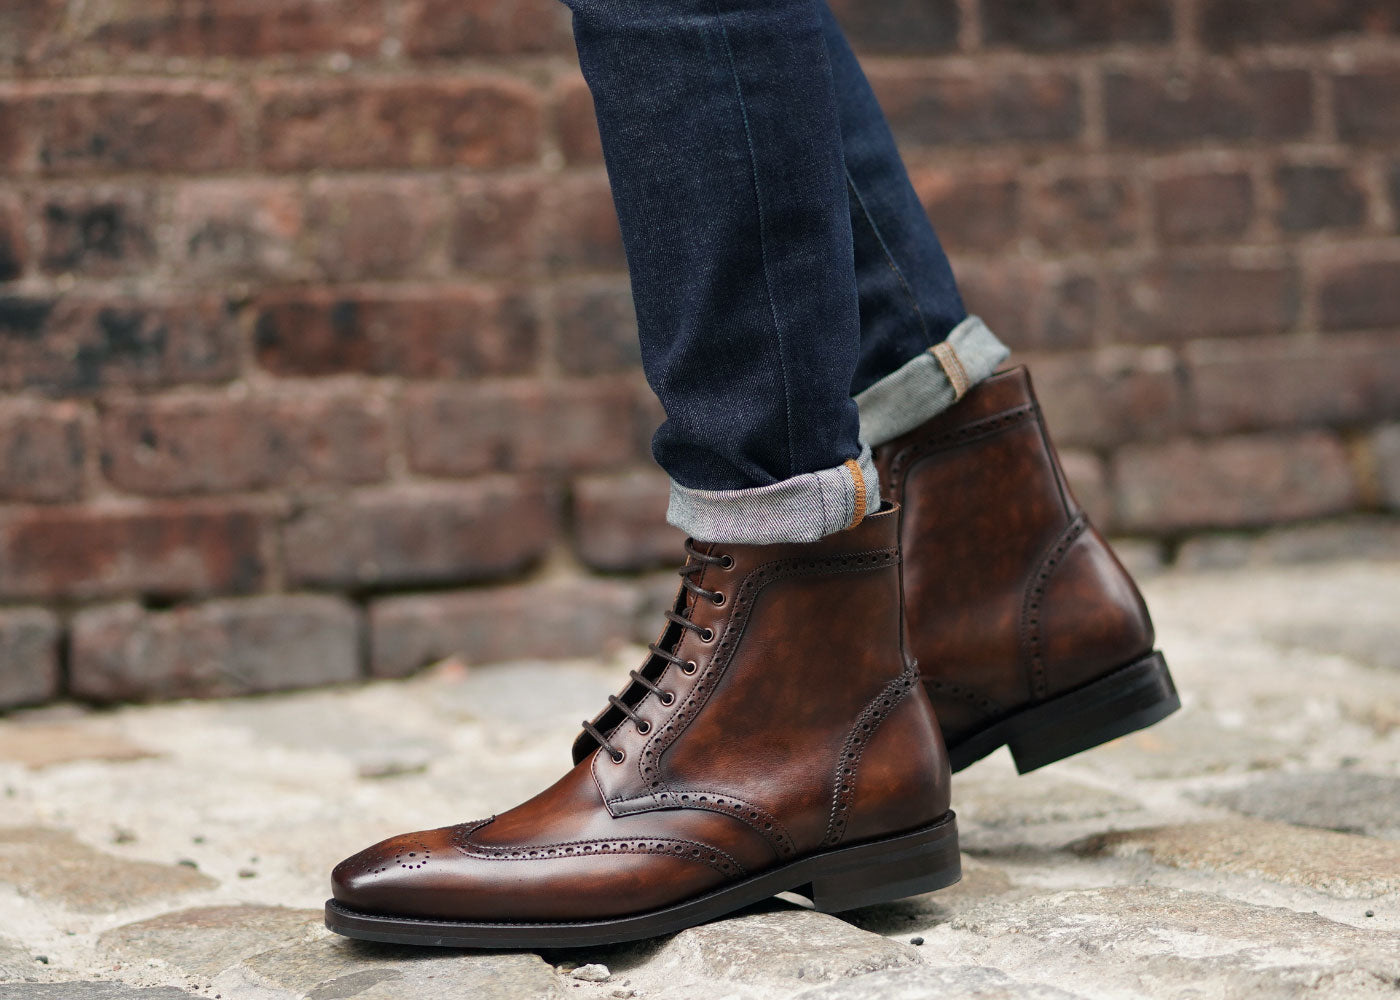 Best Men's Fashion Boot: Thursday Boot Company Color #77 Wingtip